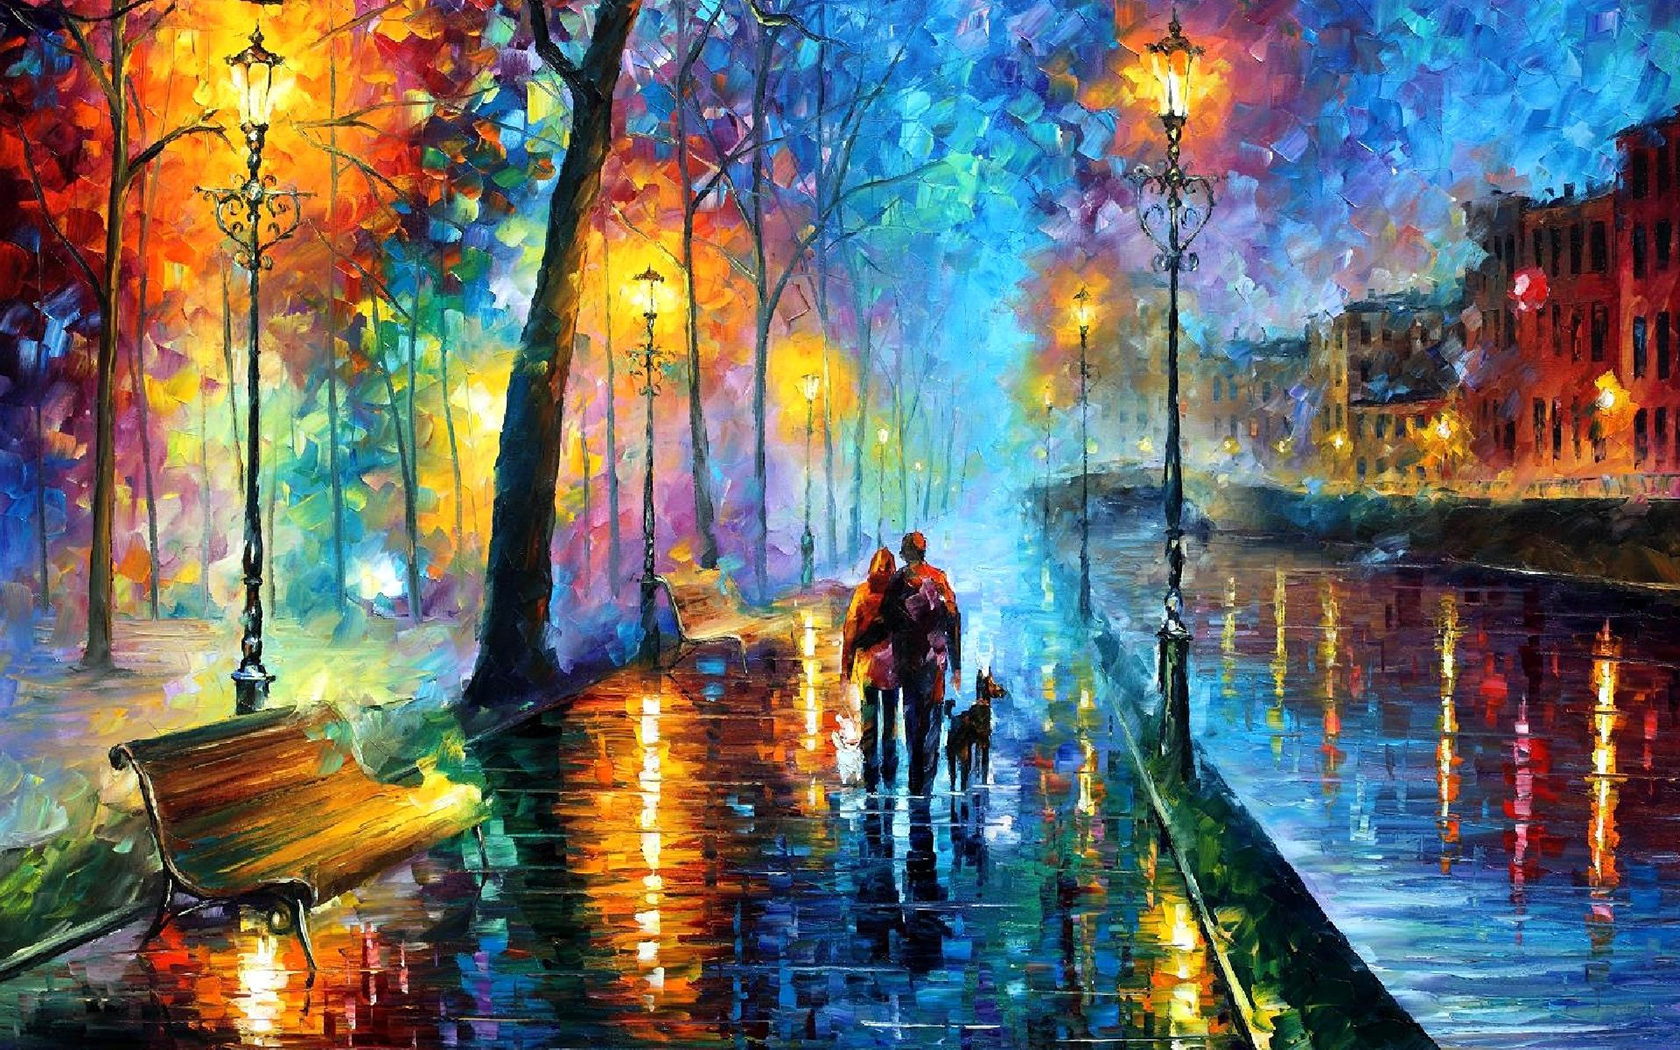 Hd wallpaper art - Leonid Afremov Impressionistic Paintings